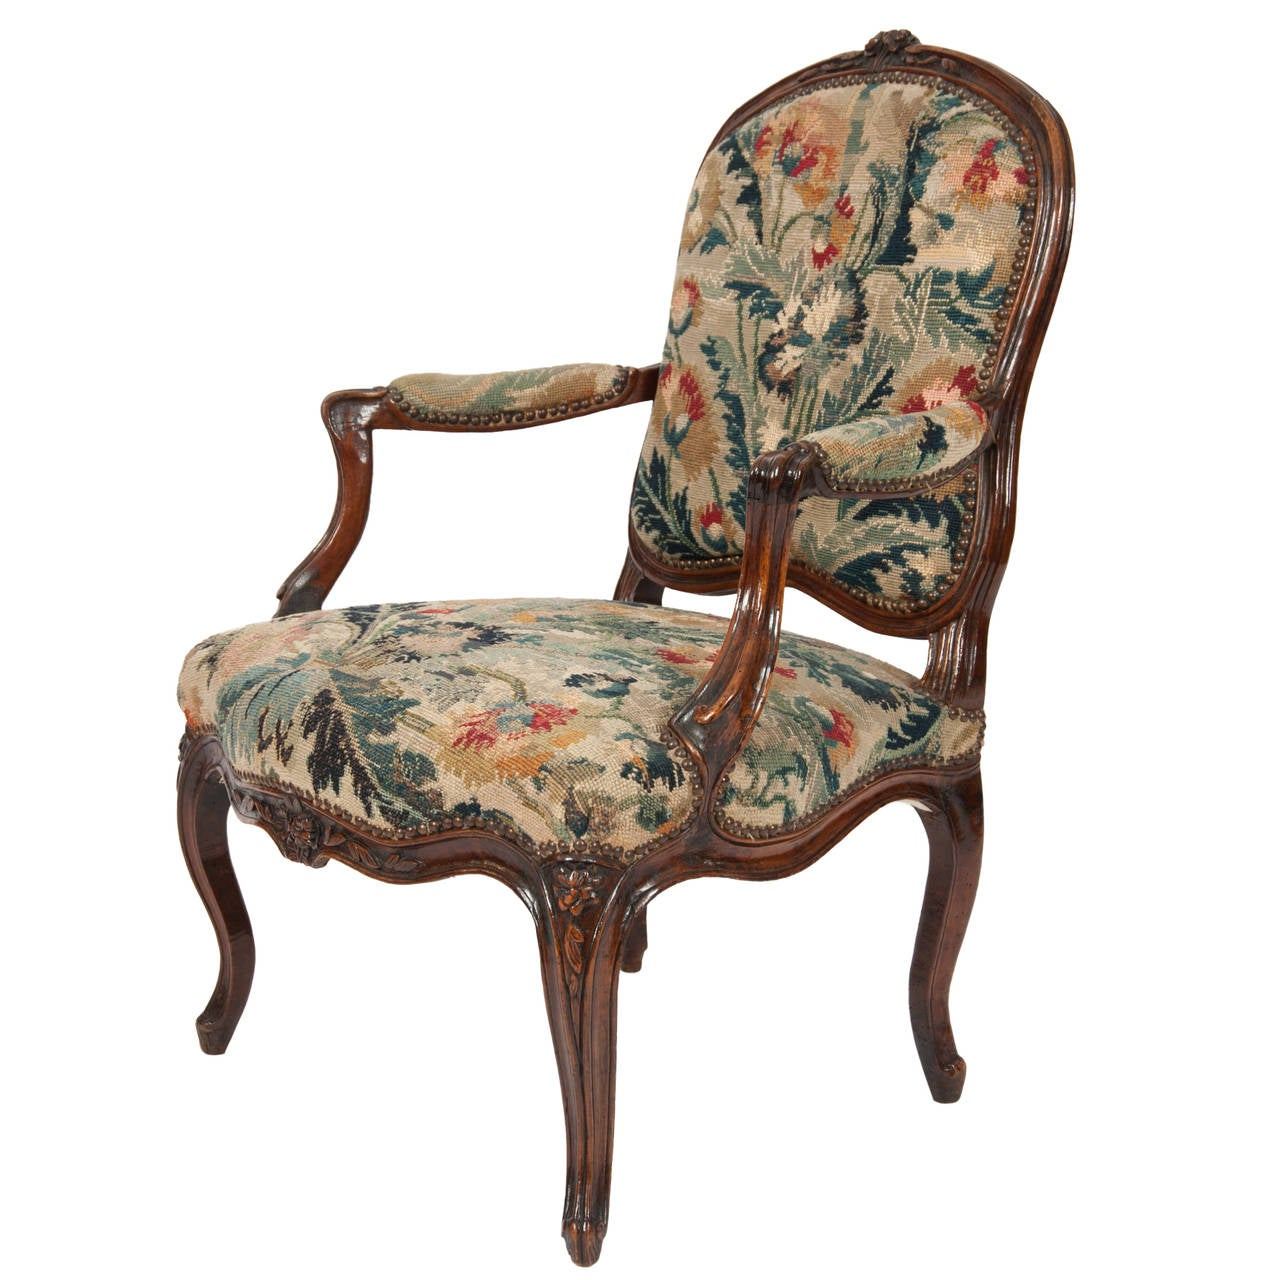 french circa 18th century louis xv period fauteuil for sale at 1stdibs. Black Bedroom Furniture Sets. Home Design Ideas